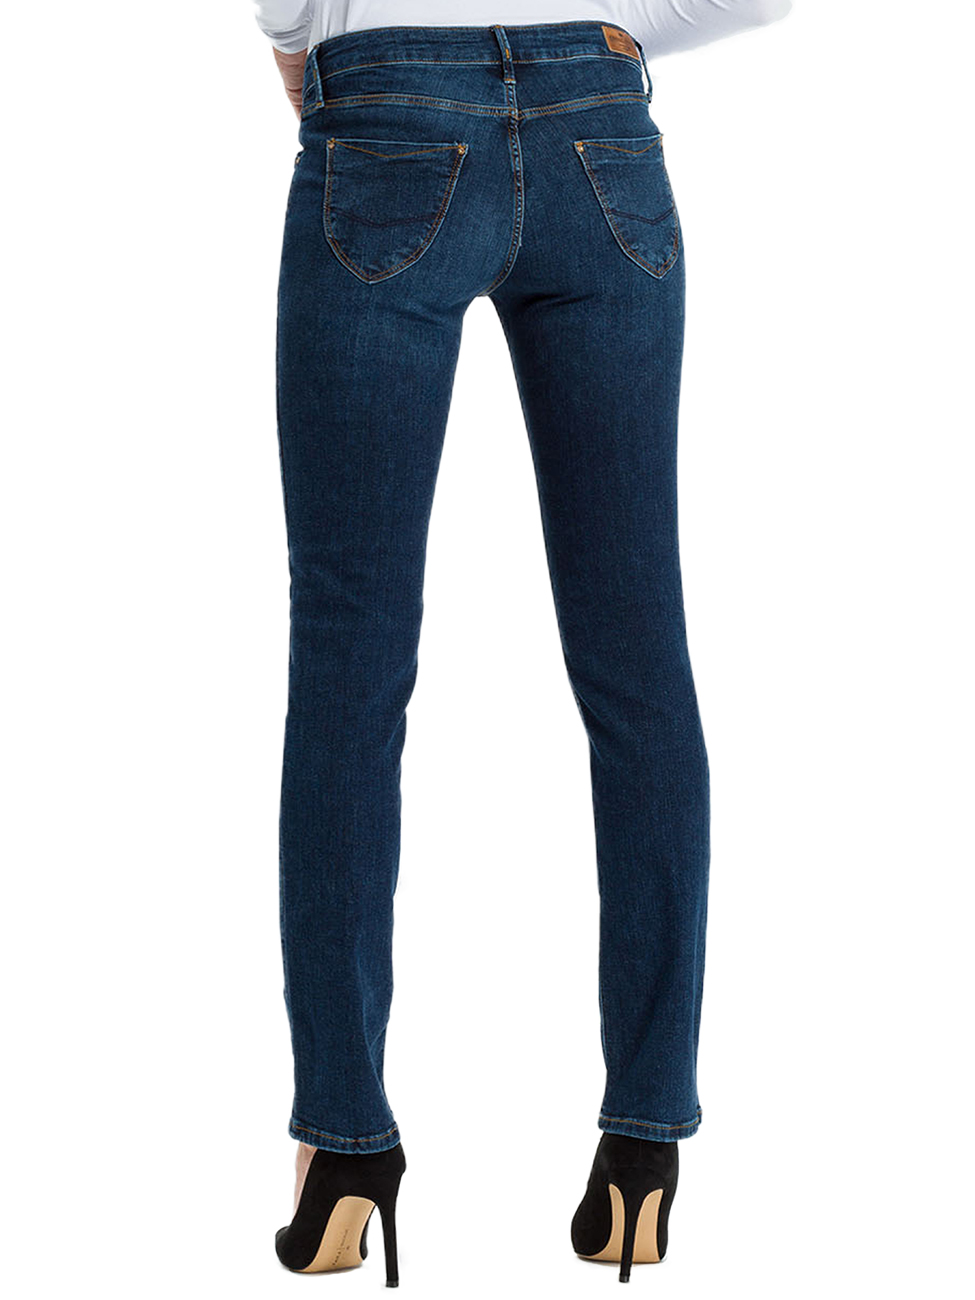 cross-jeans-damen-jeans-rose-regular-fit-blau-dark-used